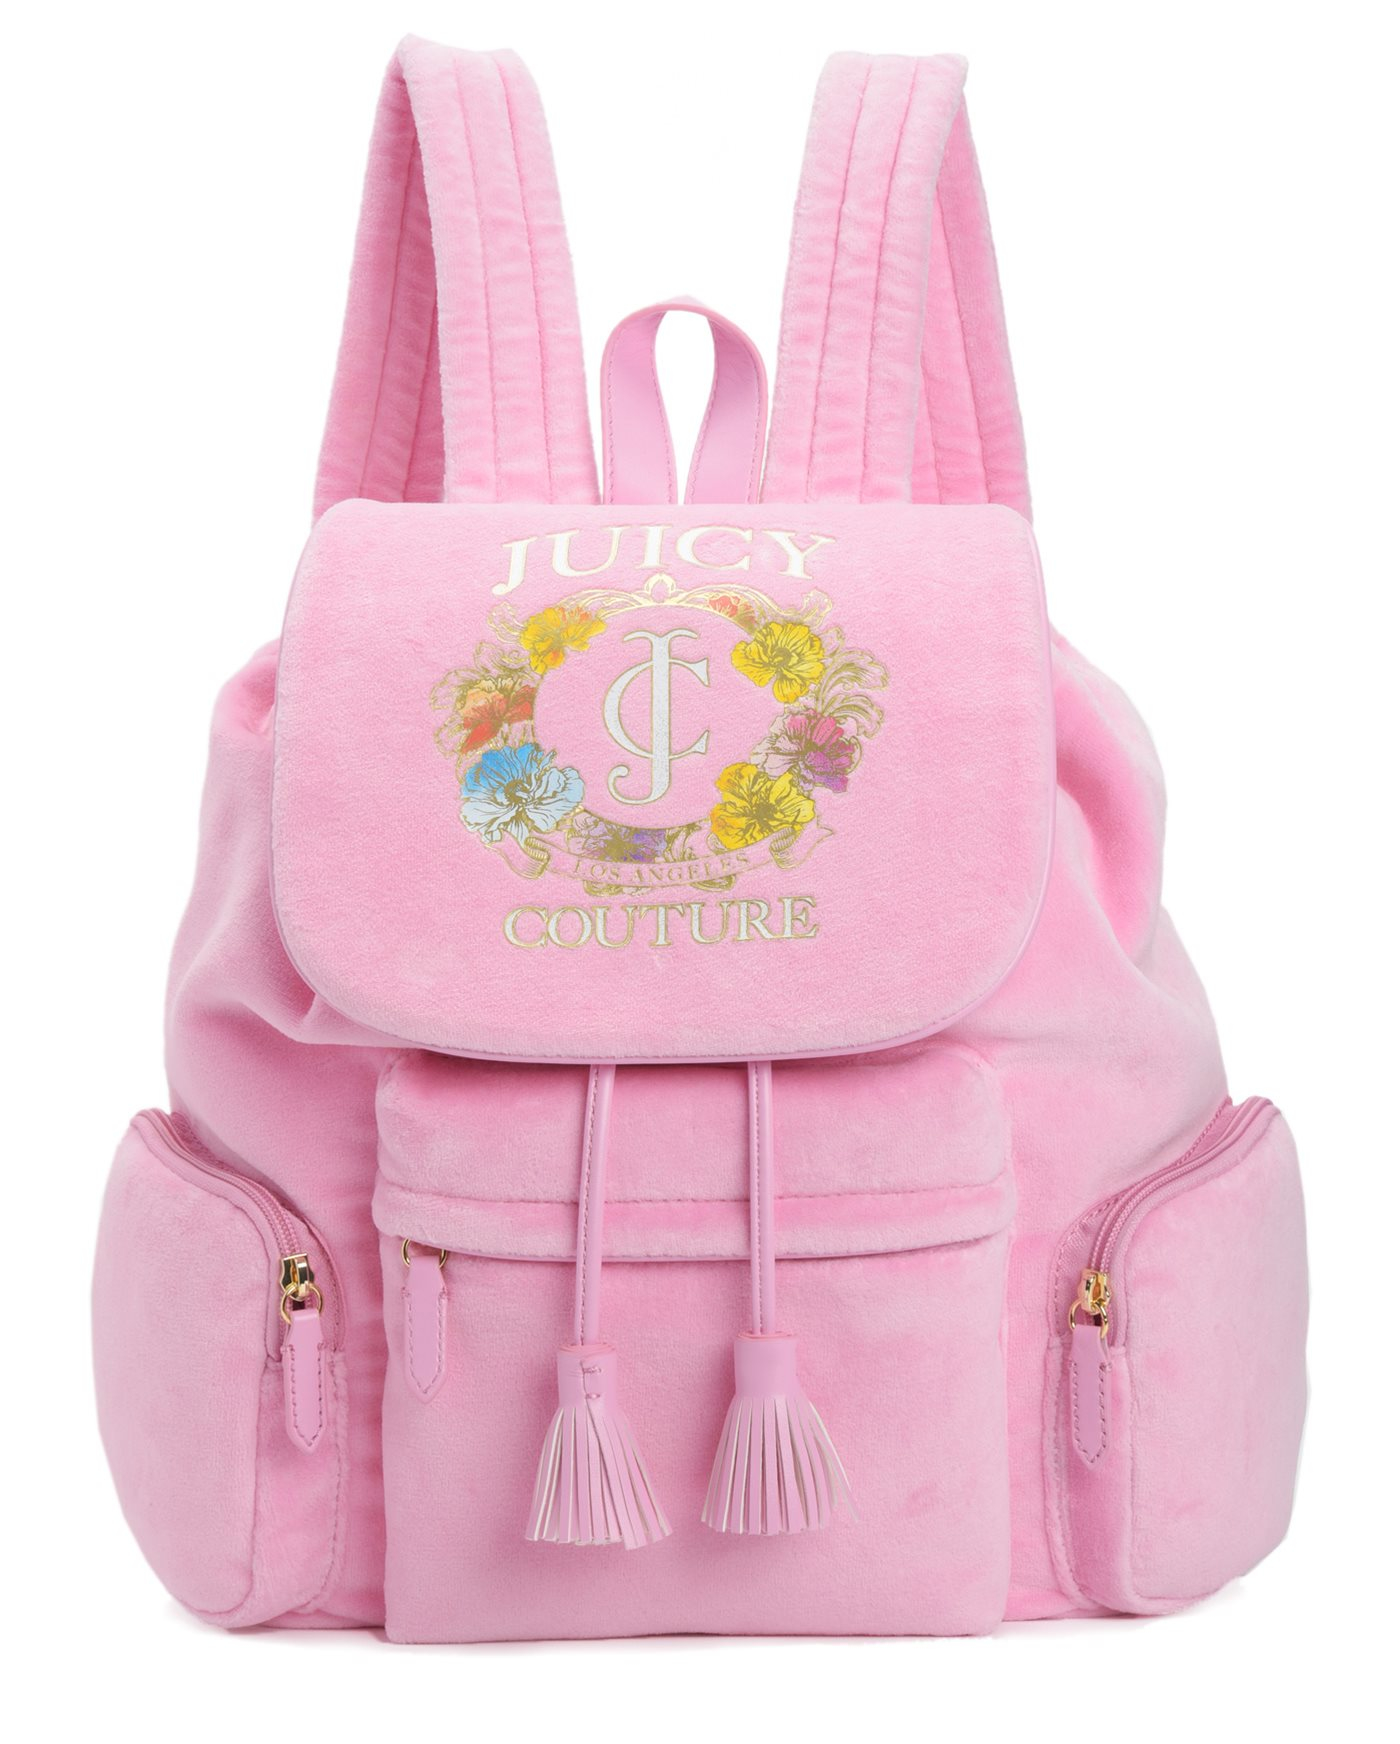 Hot pink juicy couture backpack girls